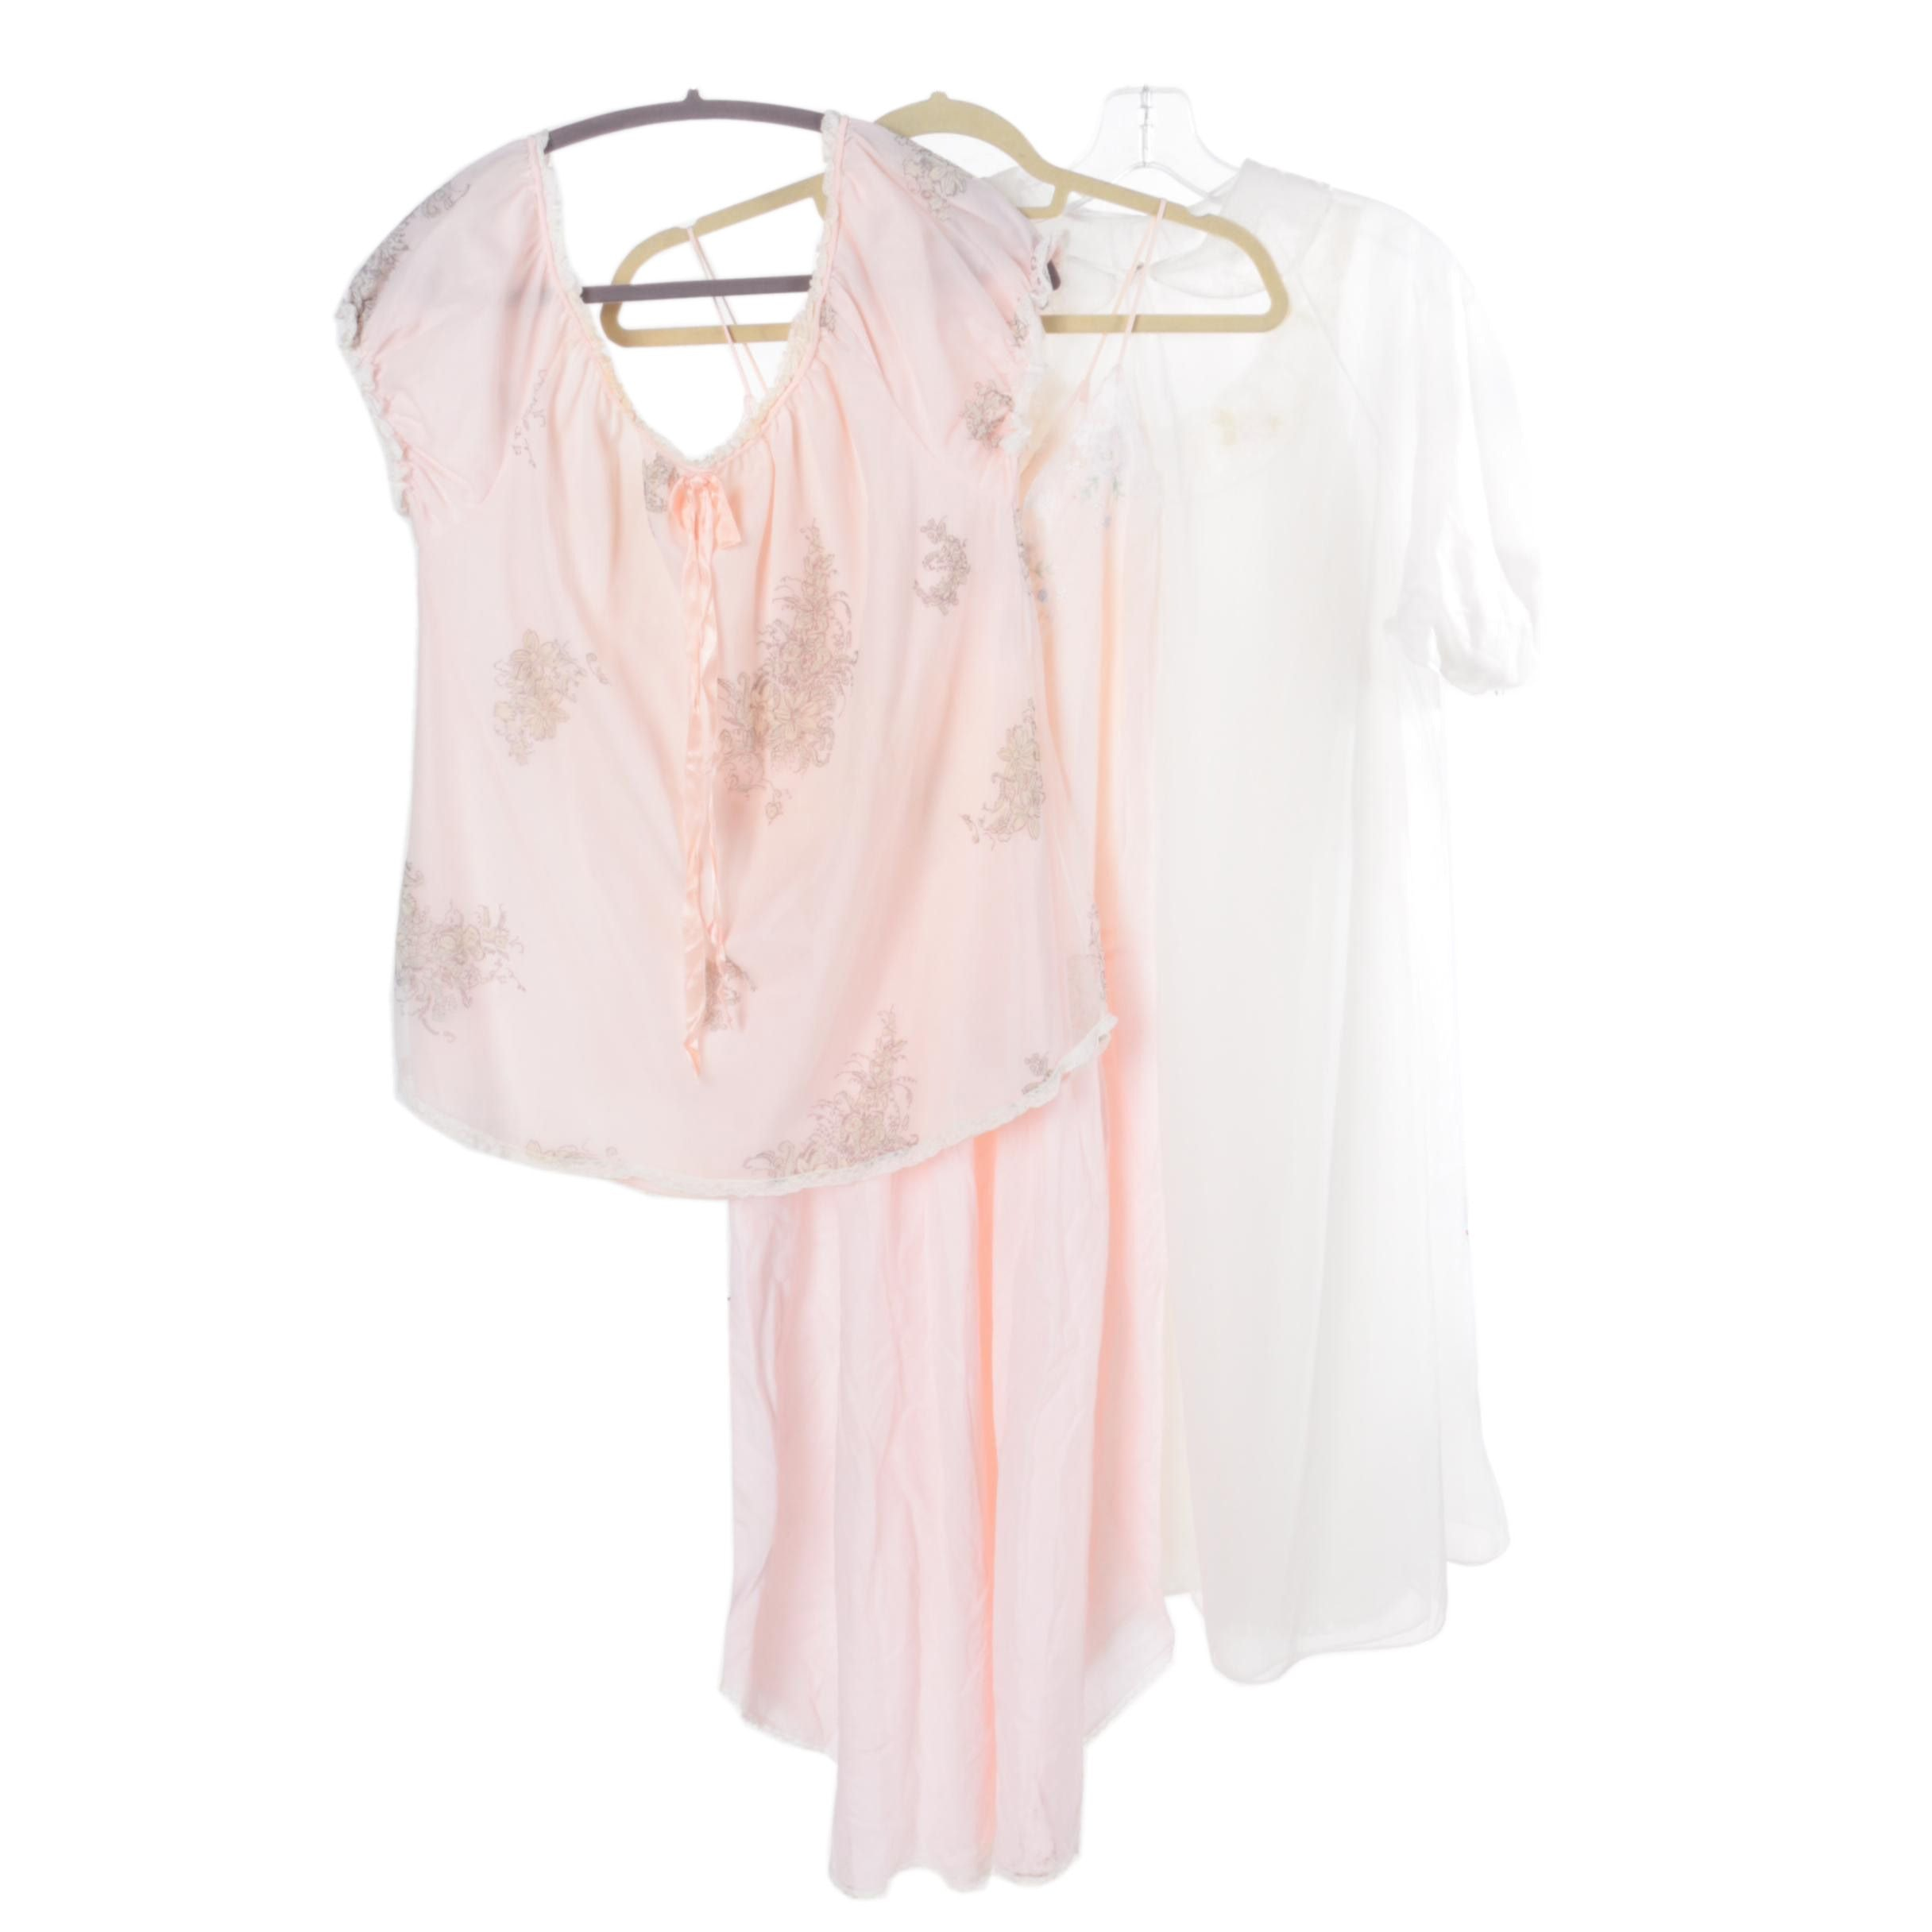 Women's Pink and White Nightgowns and Pajama Top